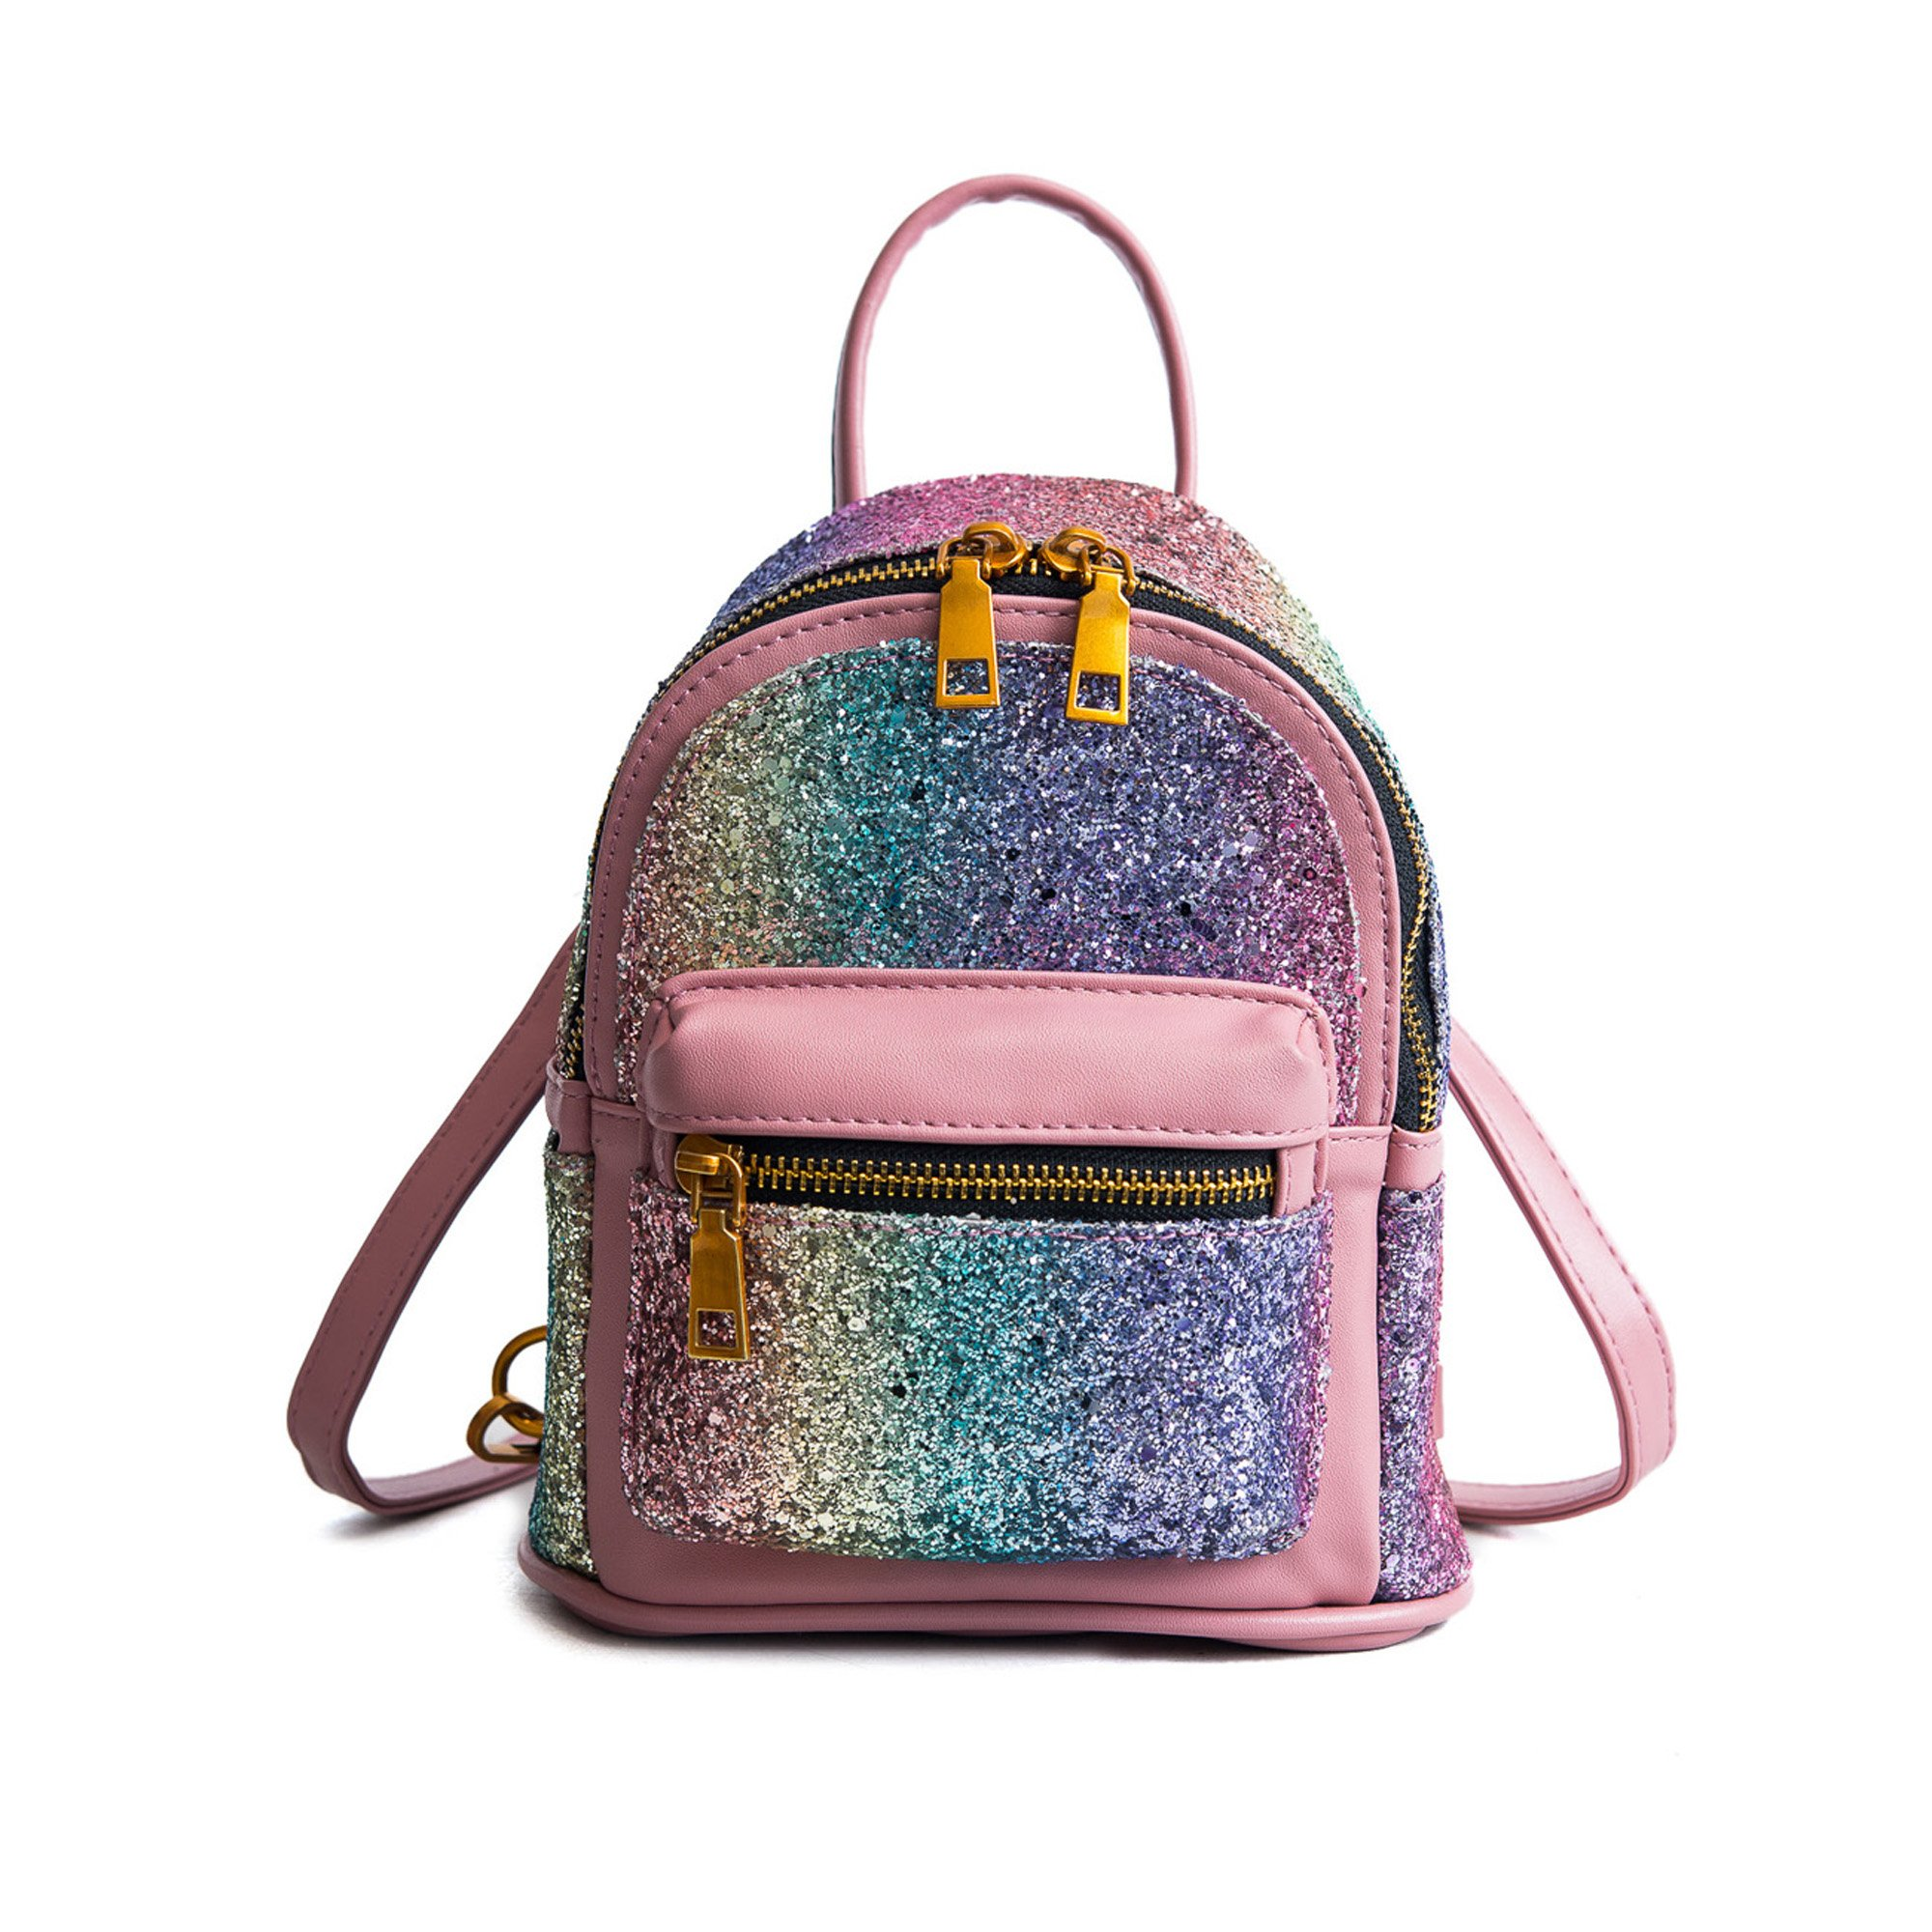 Girls Bling Mini Travel Backpack Kids Children School Bags Satchel Purses Daypack (pink rainbow)